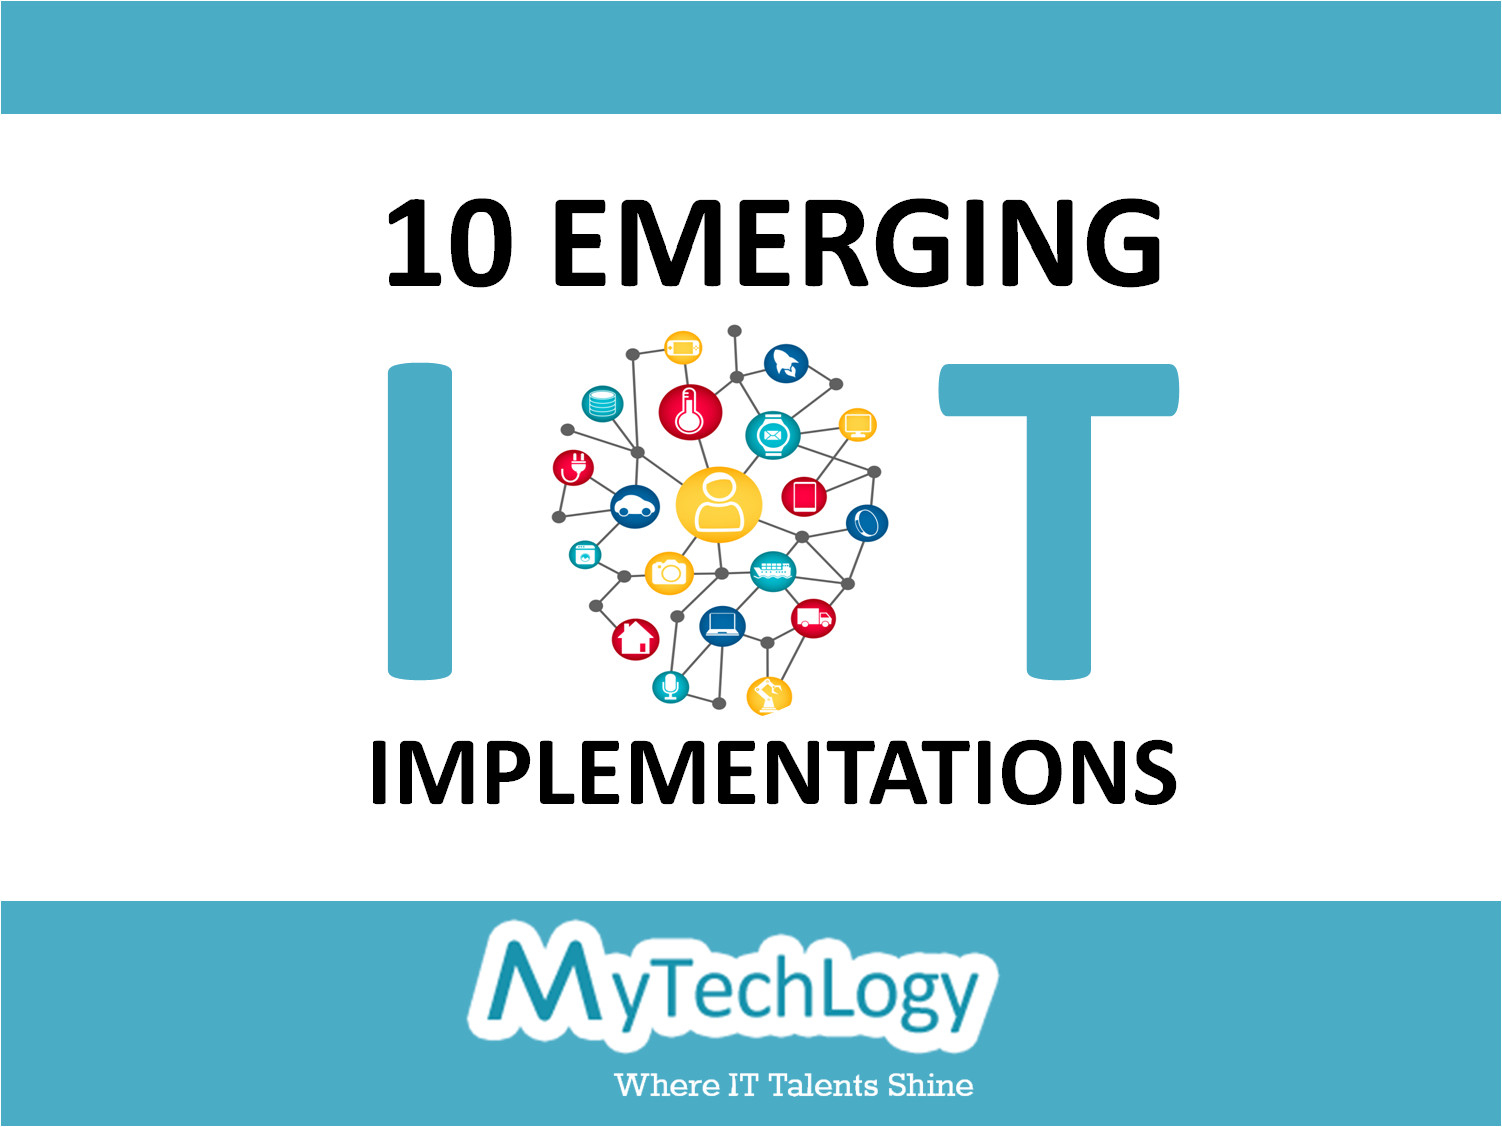 10 emerging IOT implementations - Image 1